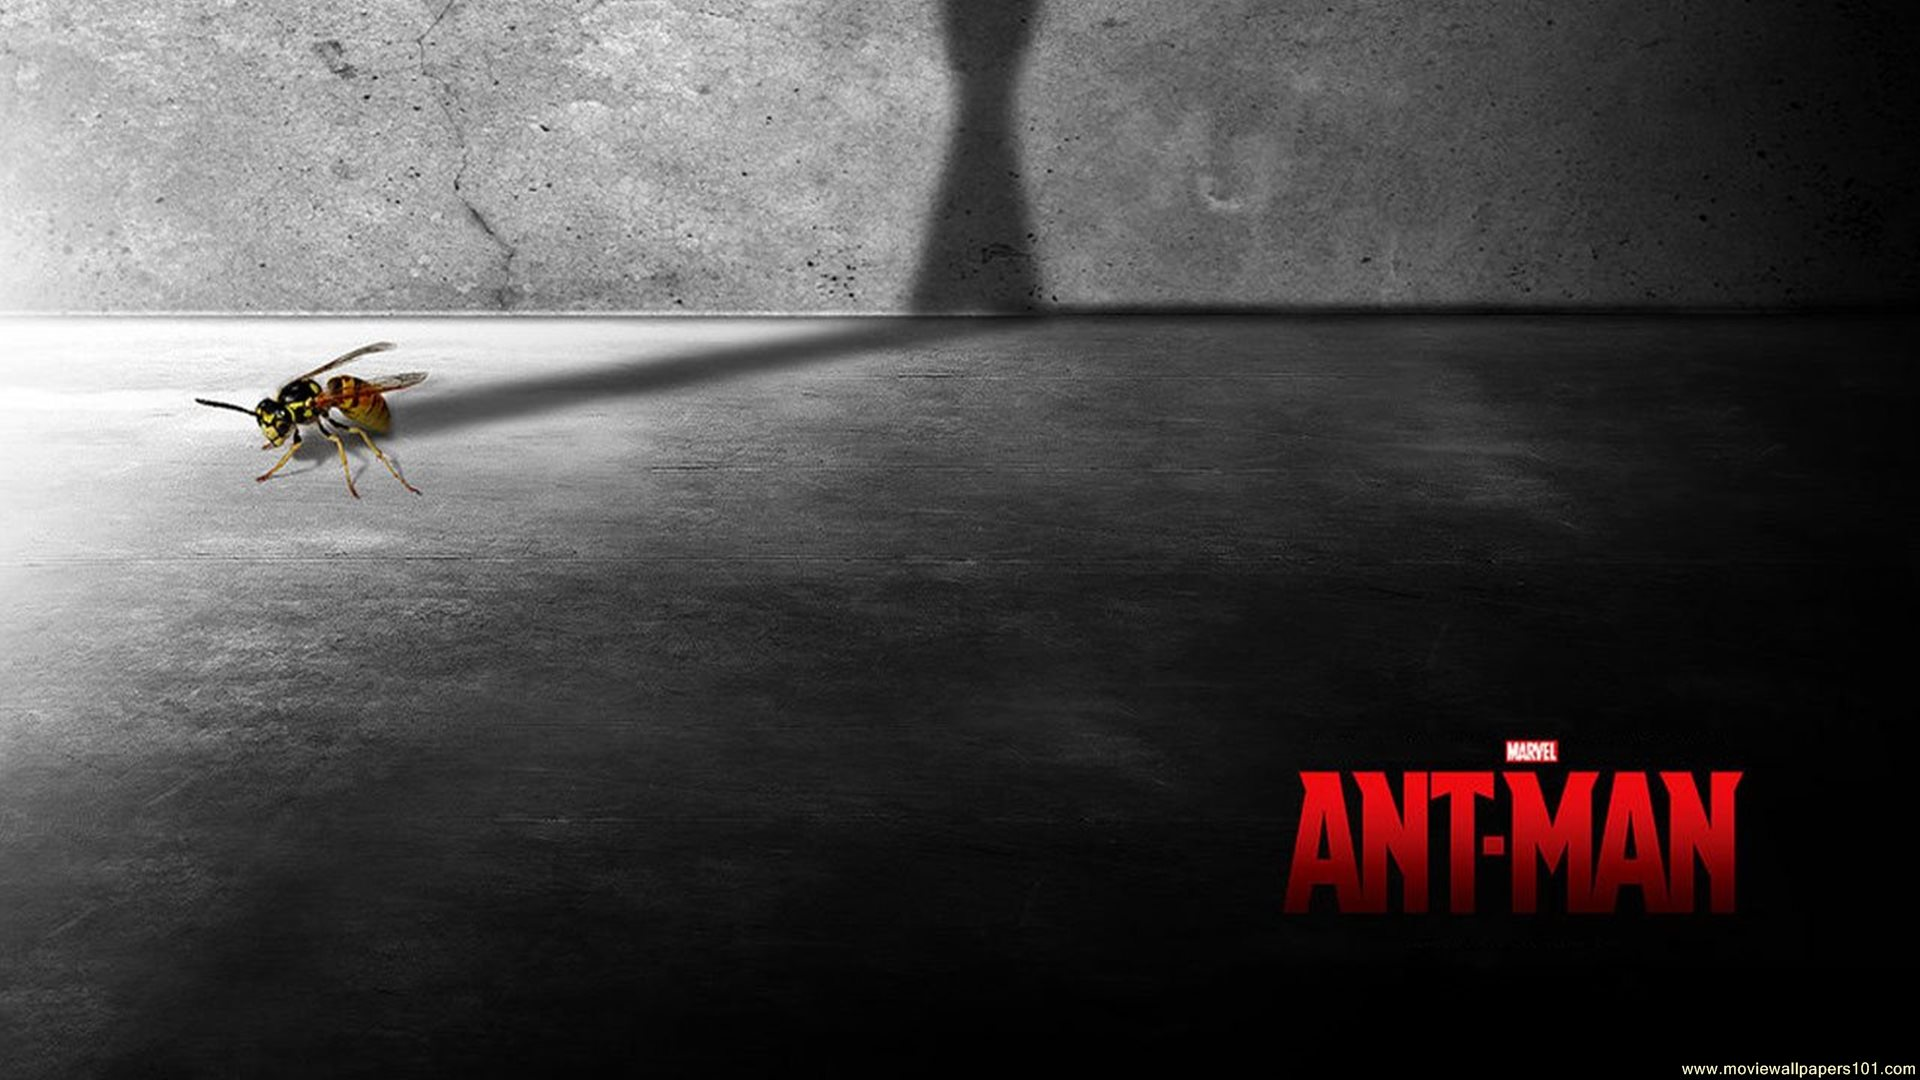 Ant Man 2015 Film Poster HD Wallpaper   Stylish HD Wallpapers 1920x1080